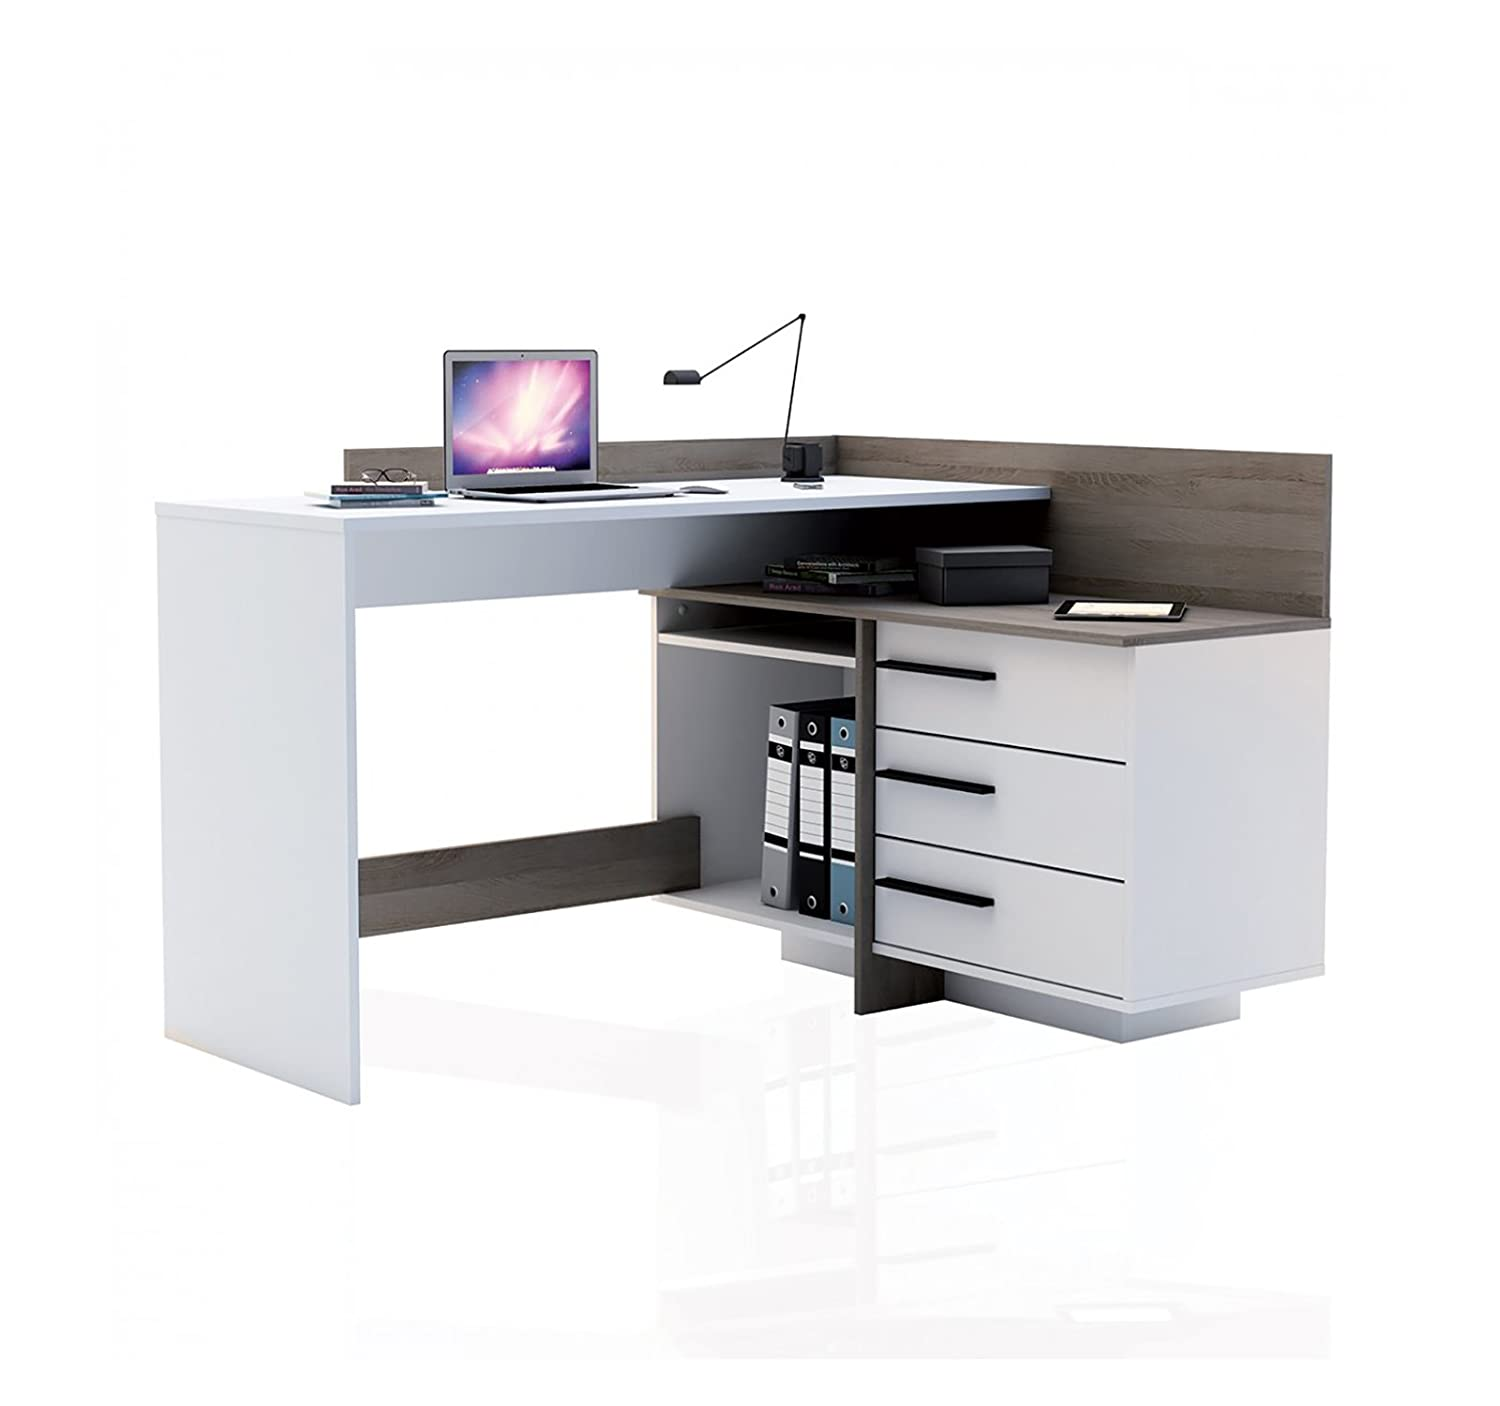 Anoza Wooden Munich Study Desk Table for Home and Office  Brown & White Finish